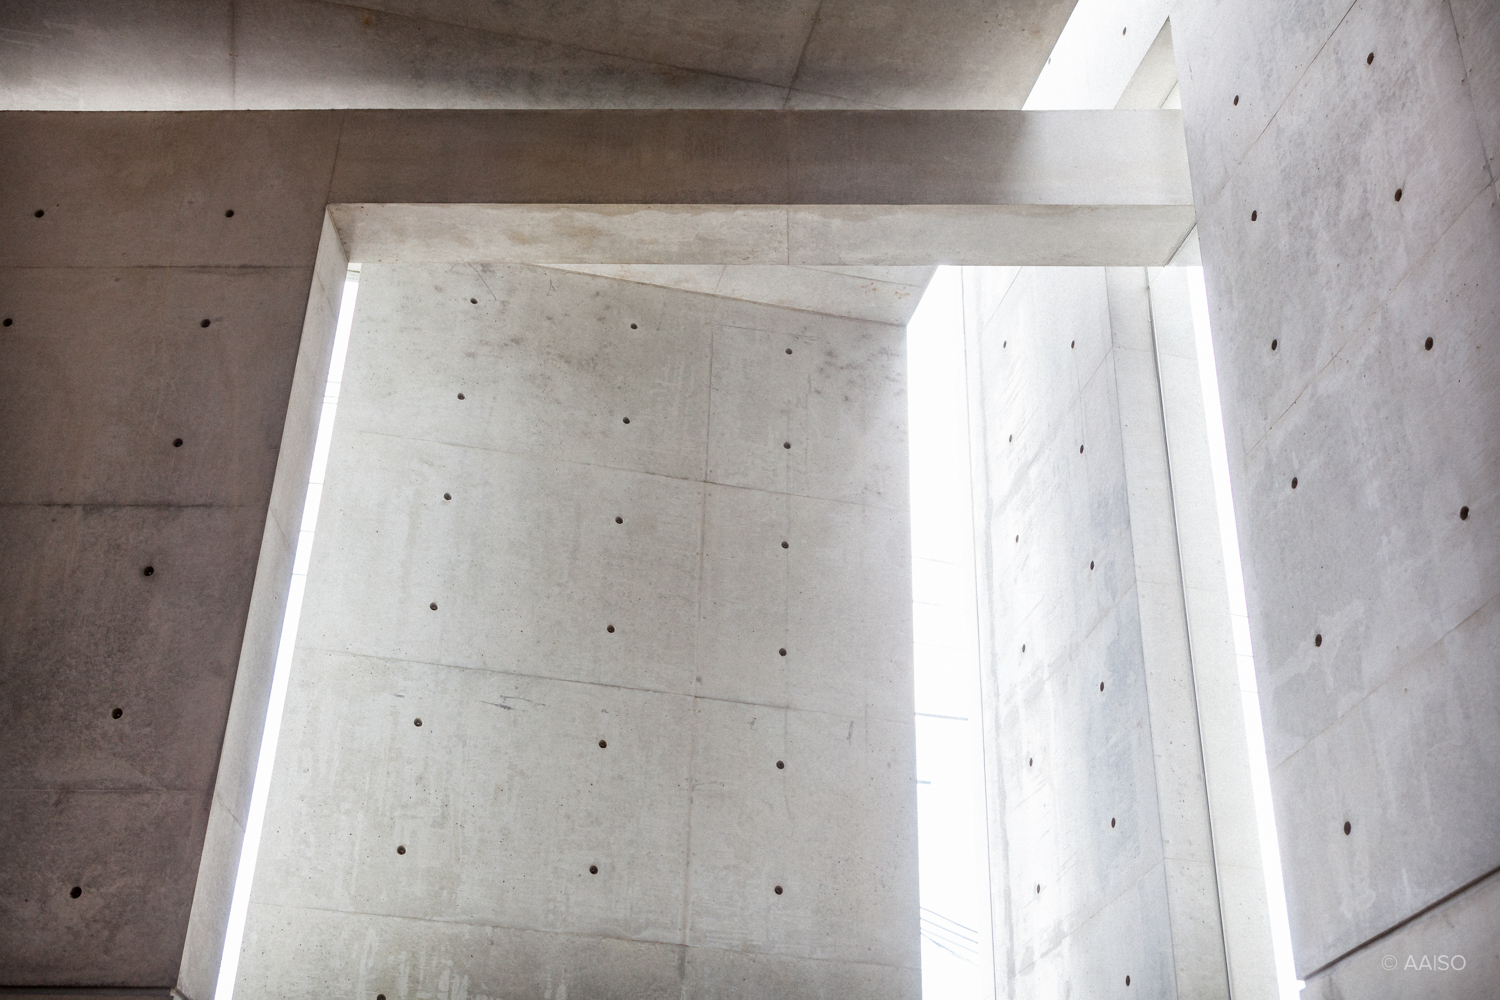 Sunday School, Church of the Light, Osaka, Tadao Ando